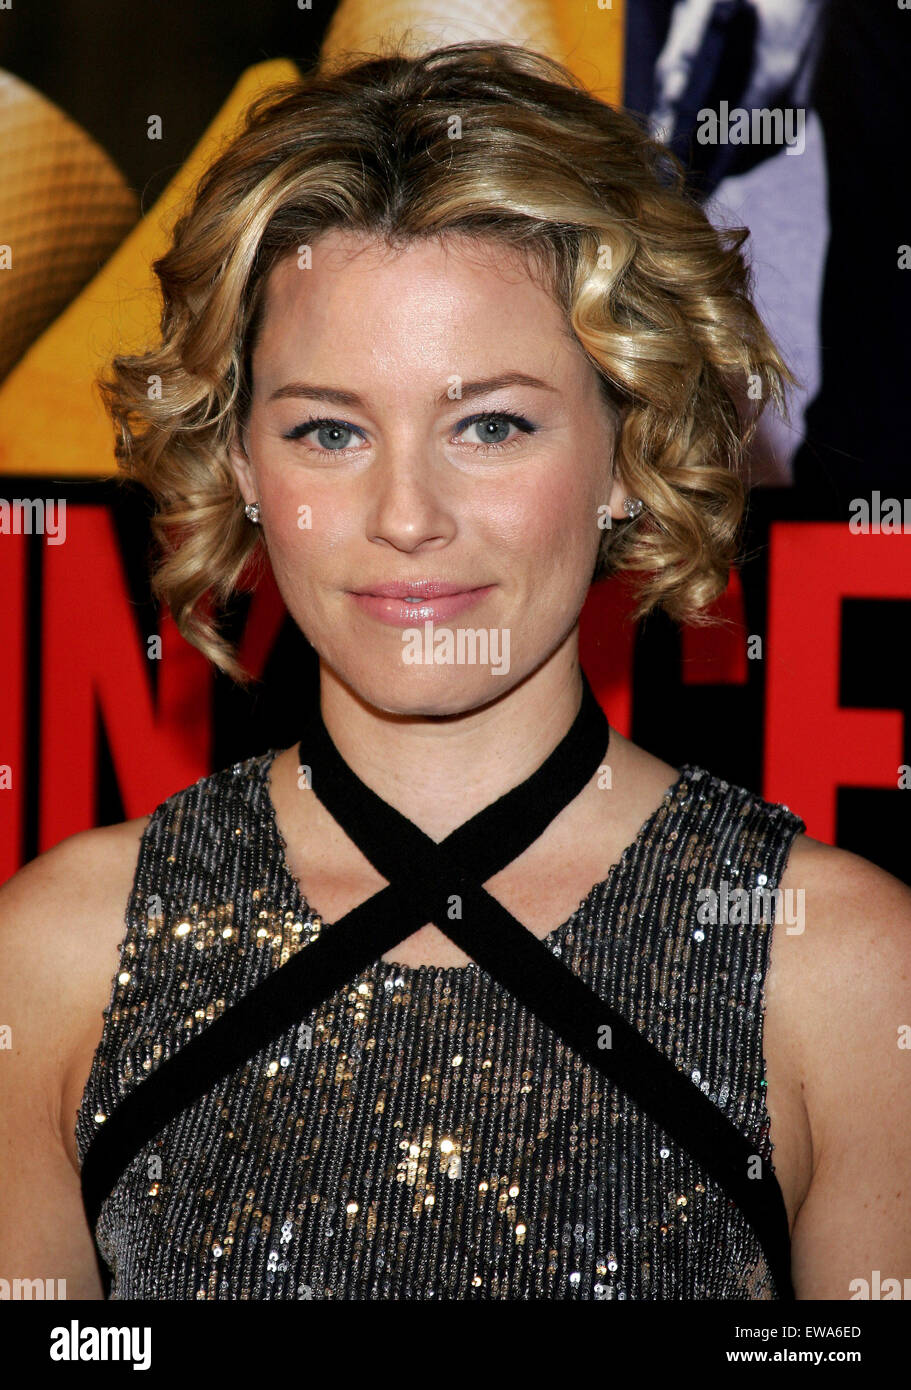 Elizabeth Banks attends the World Premiere of 'Smokin' Aces' held at the Grauman's Chinese Theater - Stock Image